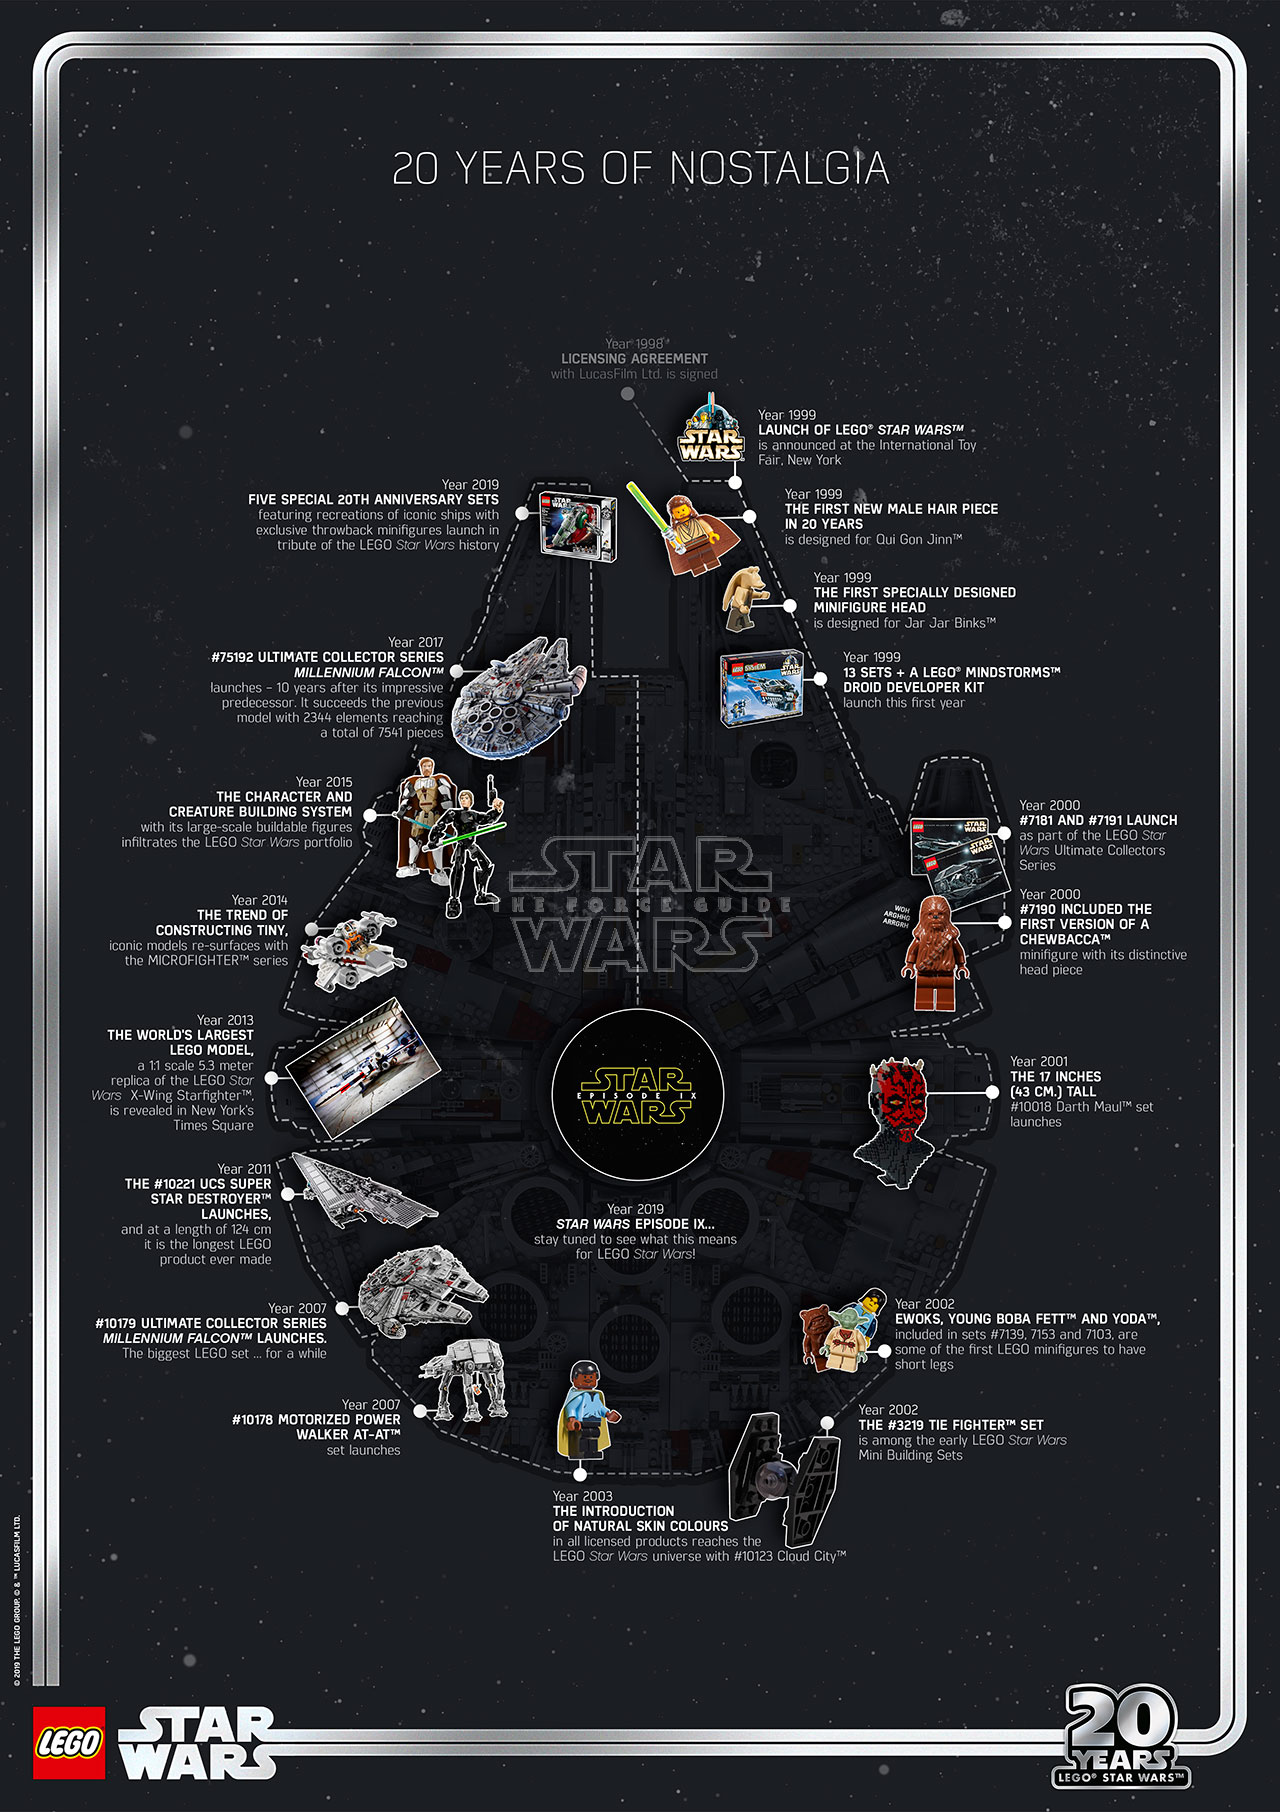 lego star wars 20-year timeline, poster and master build